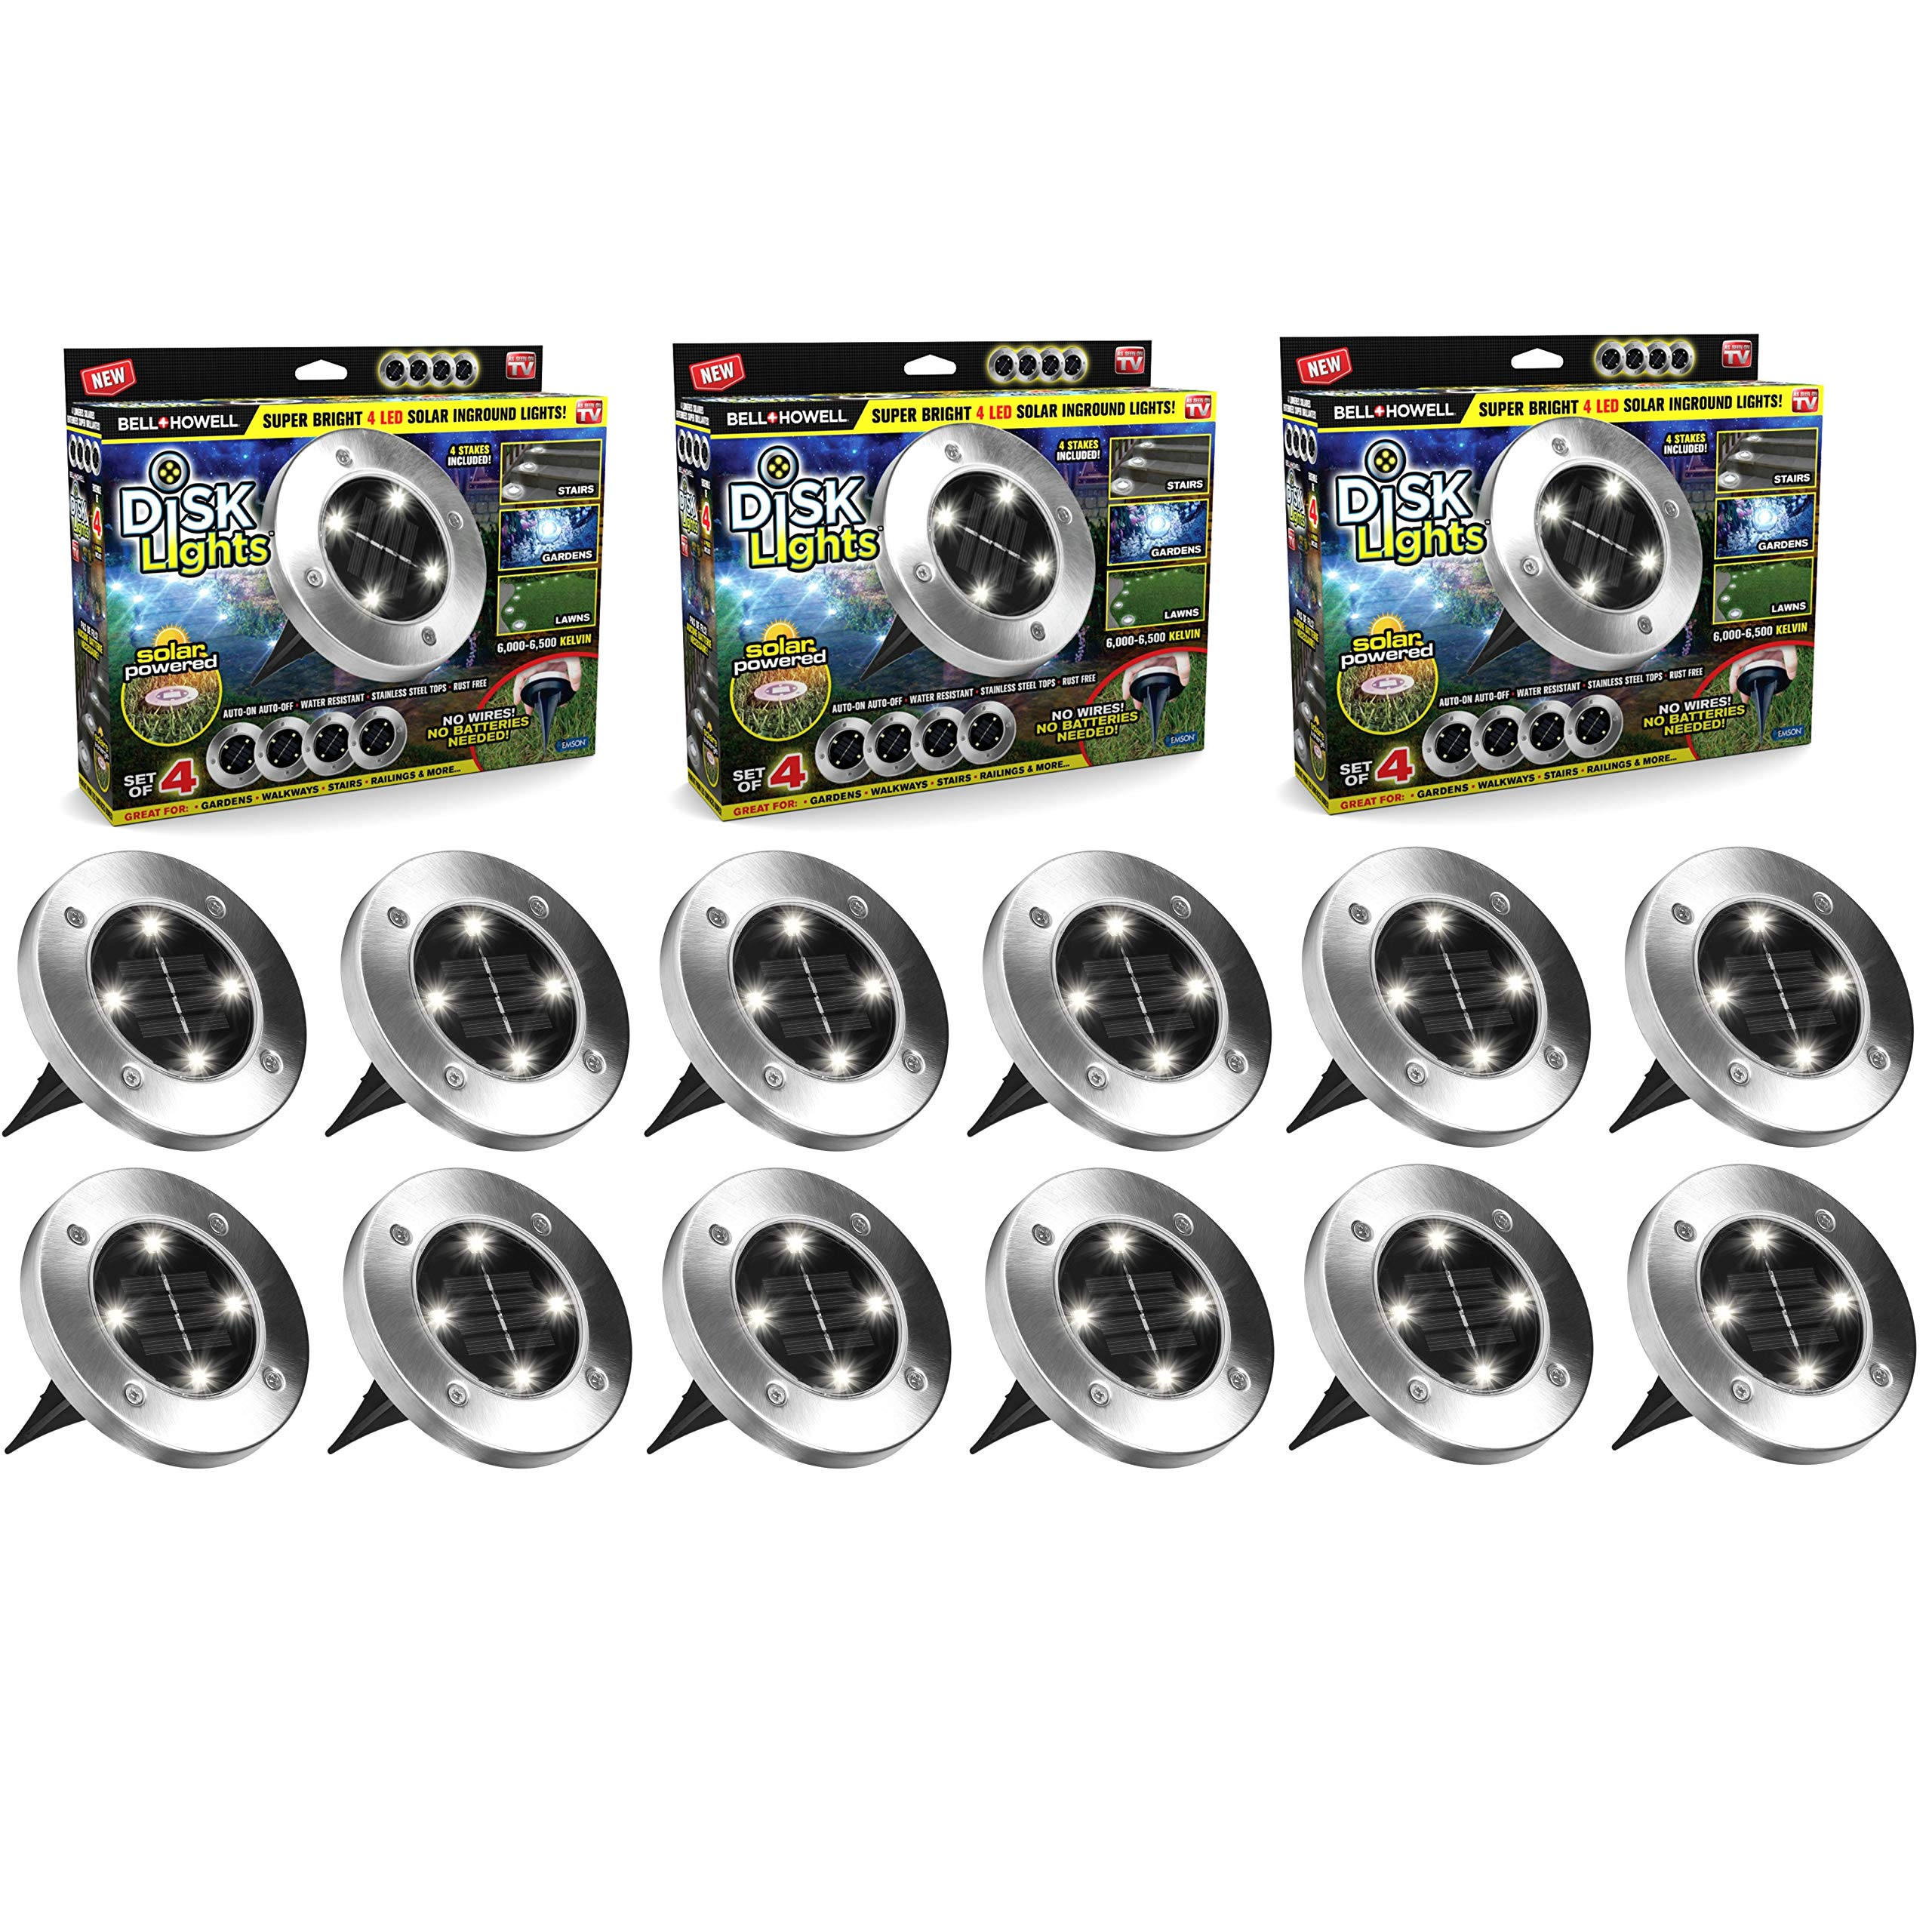 BH Disk Lights 4-LED Solar-powered Auto On/Off Outdoor Lighting As Seen On TV (12, Regular)